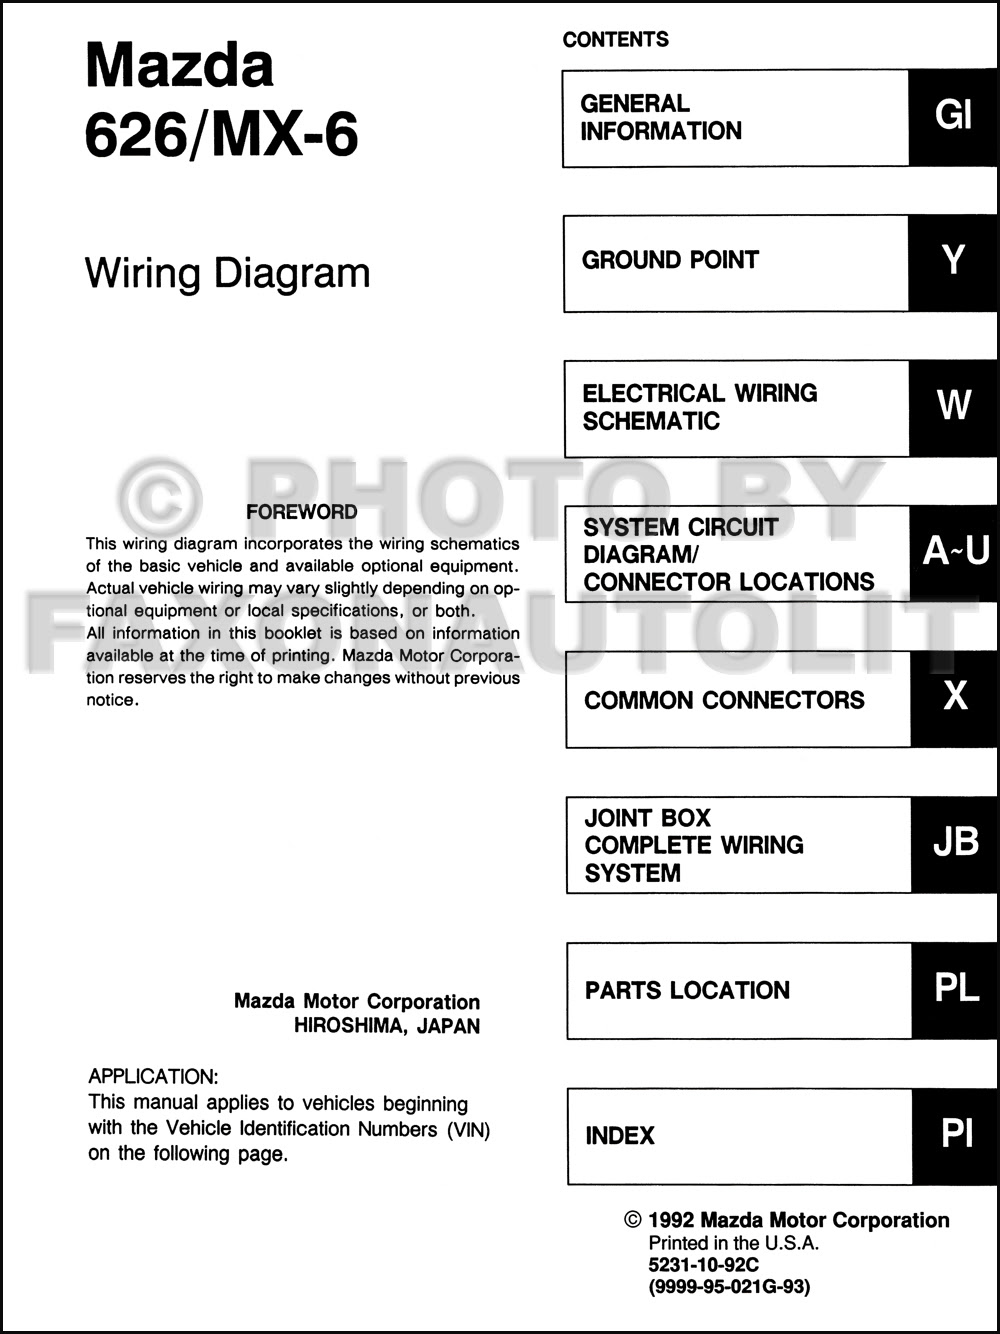 Diagram Mazda 626 Wiring Diagrams Manual Full Version Hd Quality Diagrams Manual Diagramcovinh Gisbertovalori It